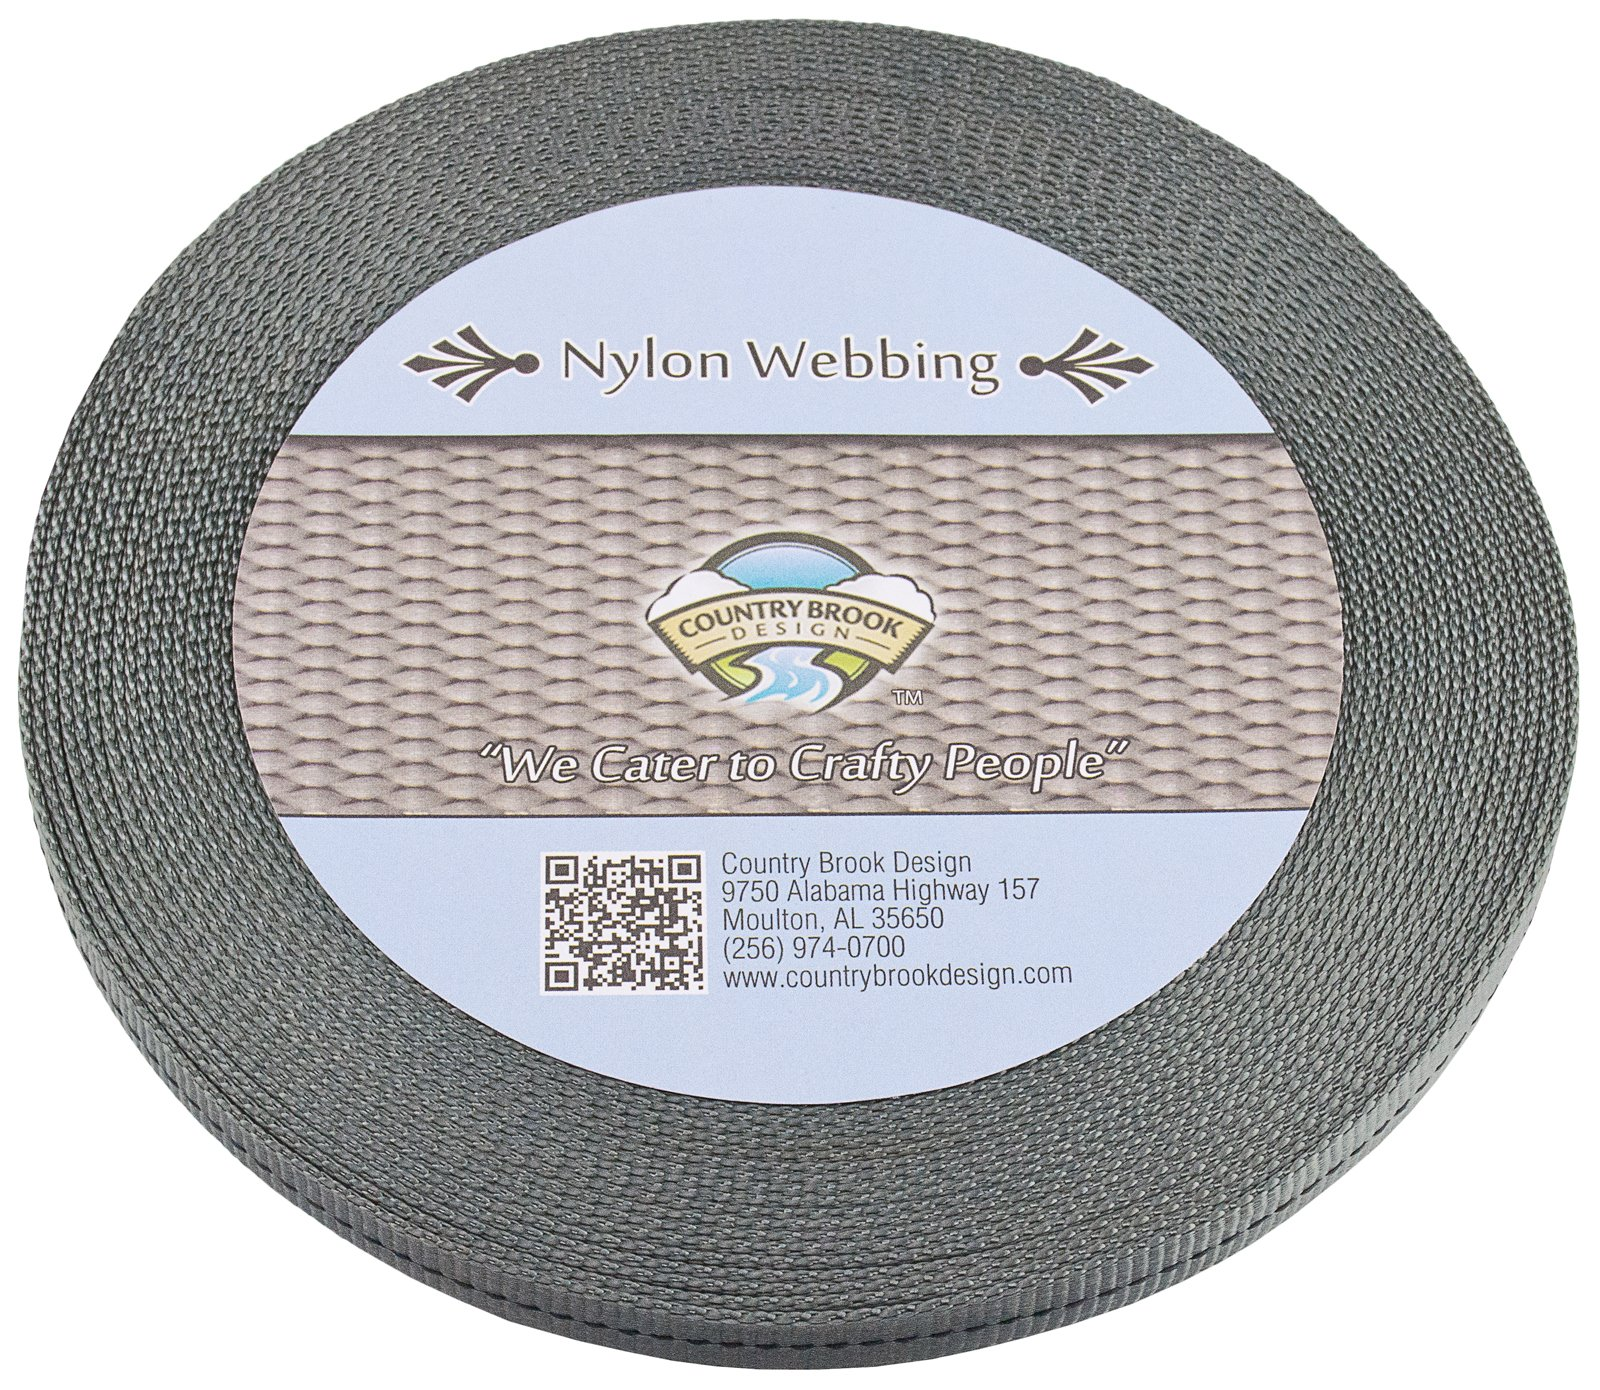 Country Brook Design - 1/2 Inch Foliage Green Military Spec Tubular Nylon Webbing, 20 Yards by Country Brook Design